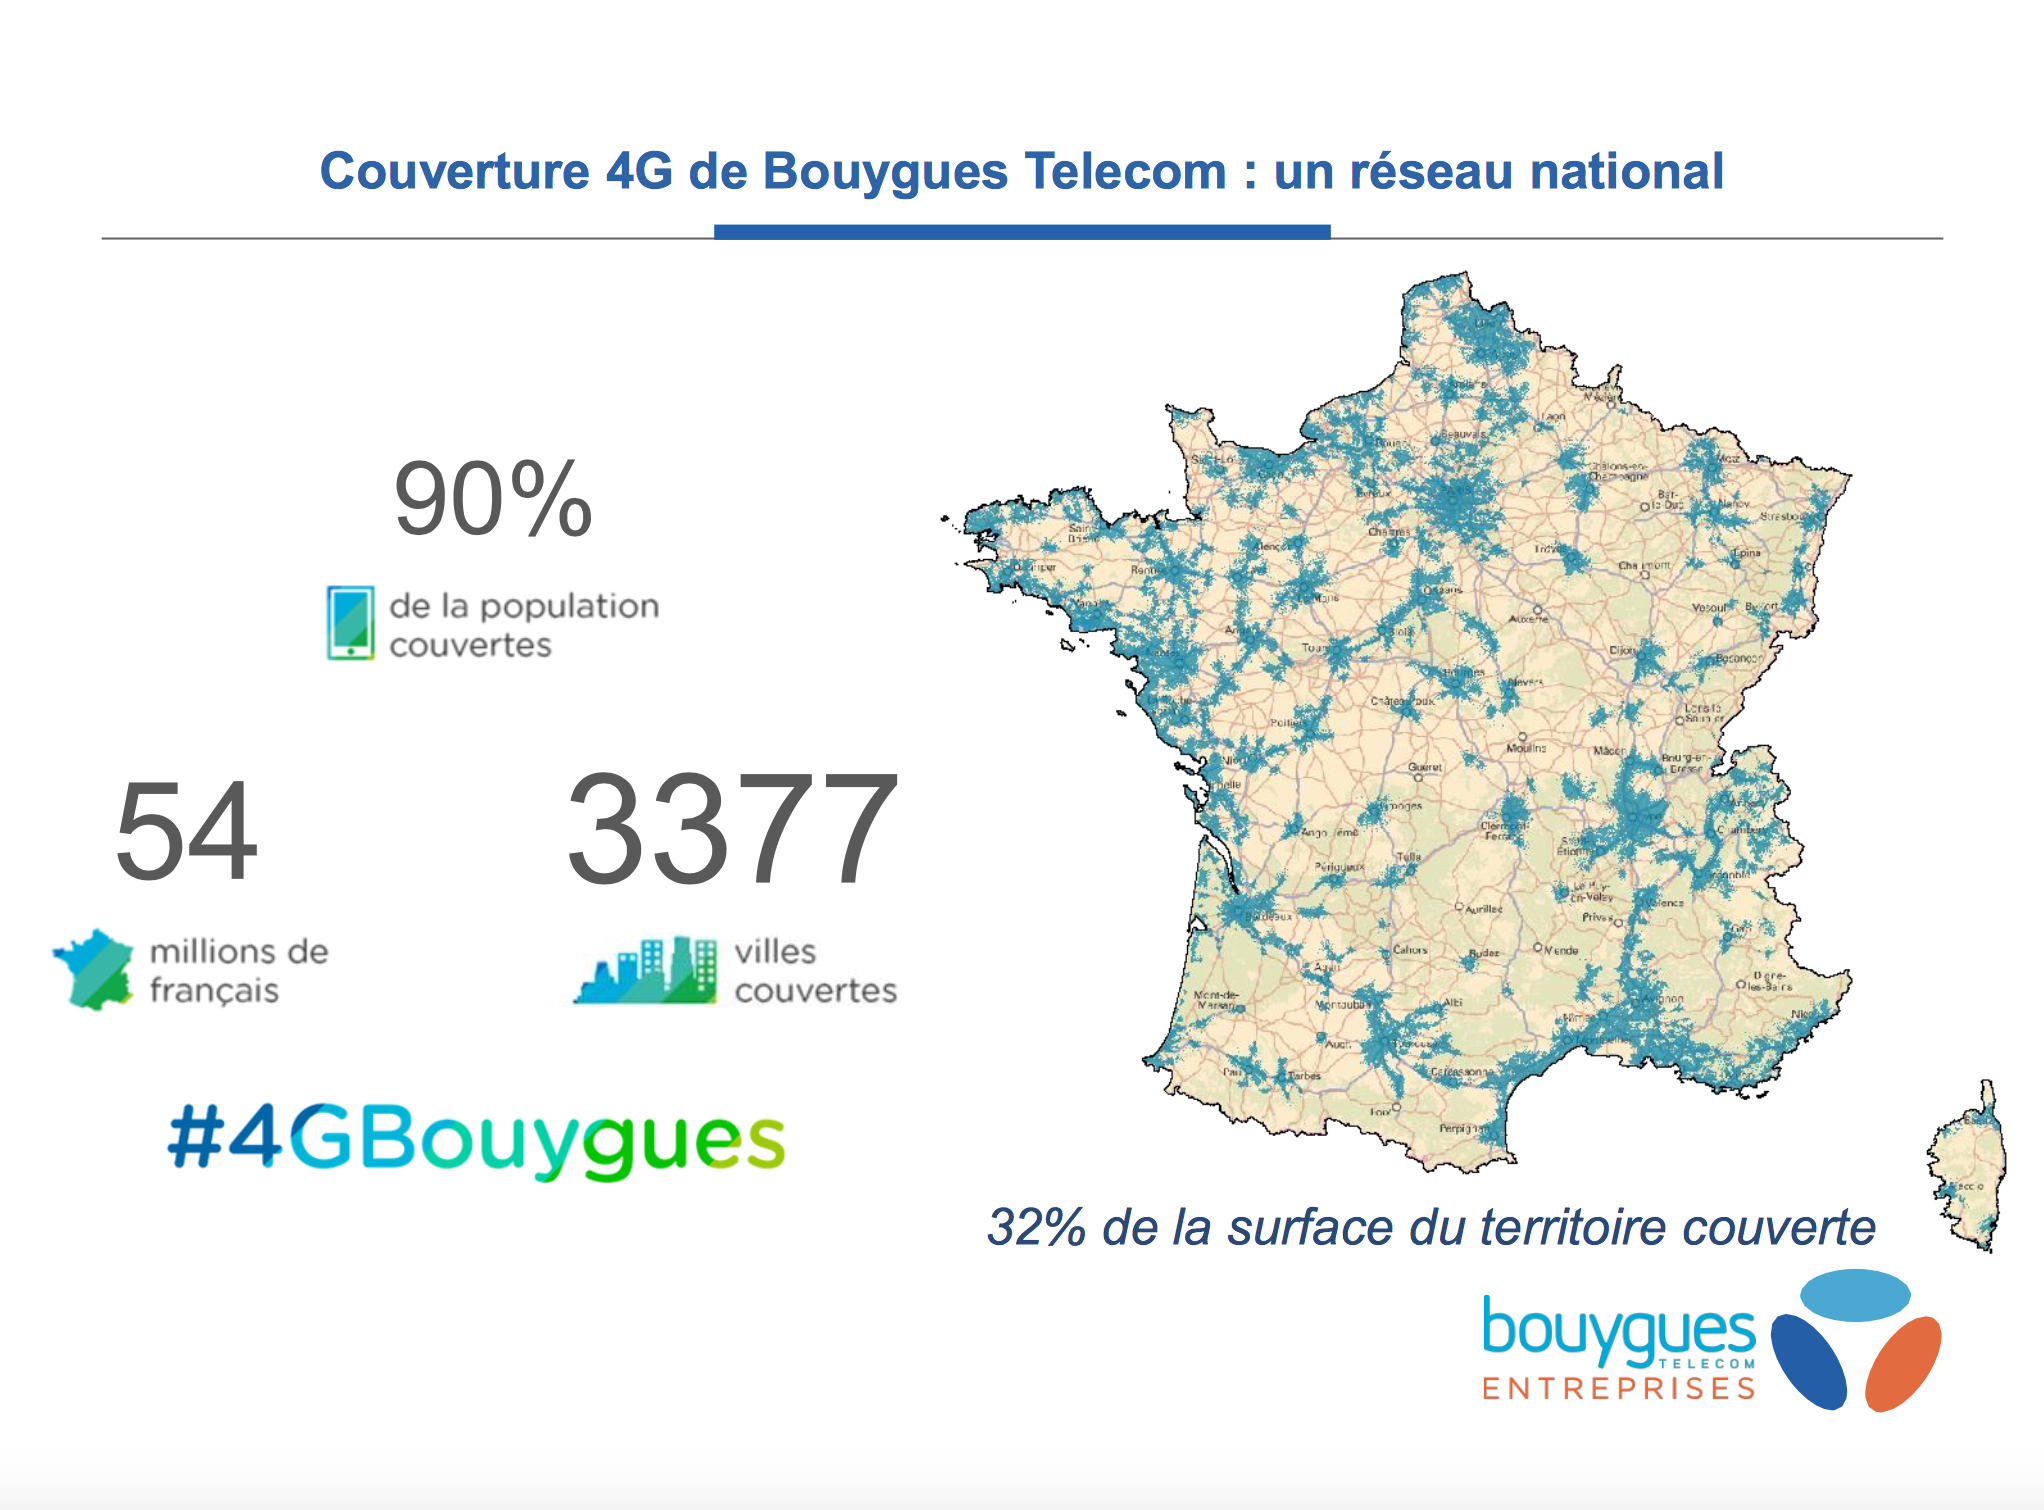 Couverture 4G de Bouygues Telecom en France